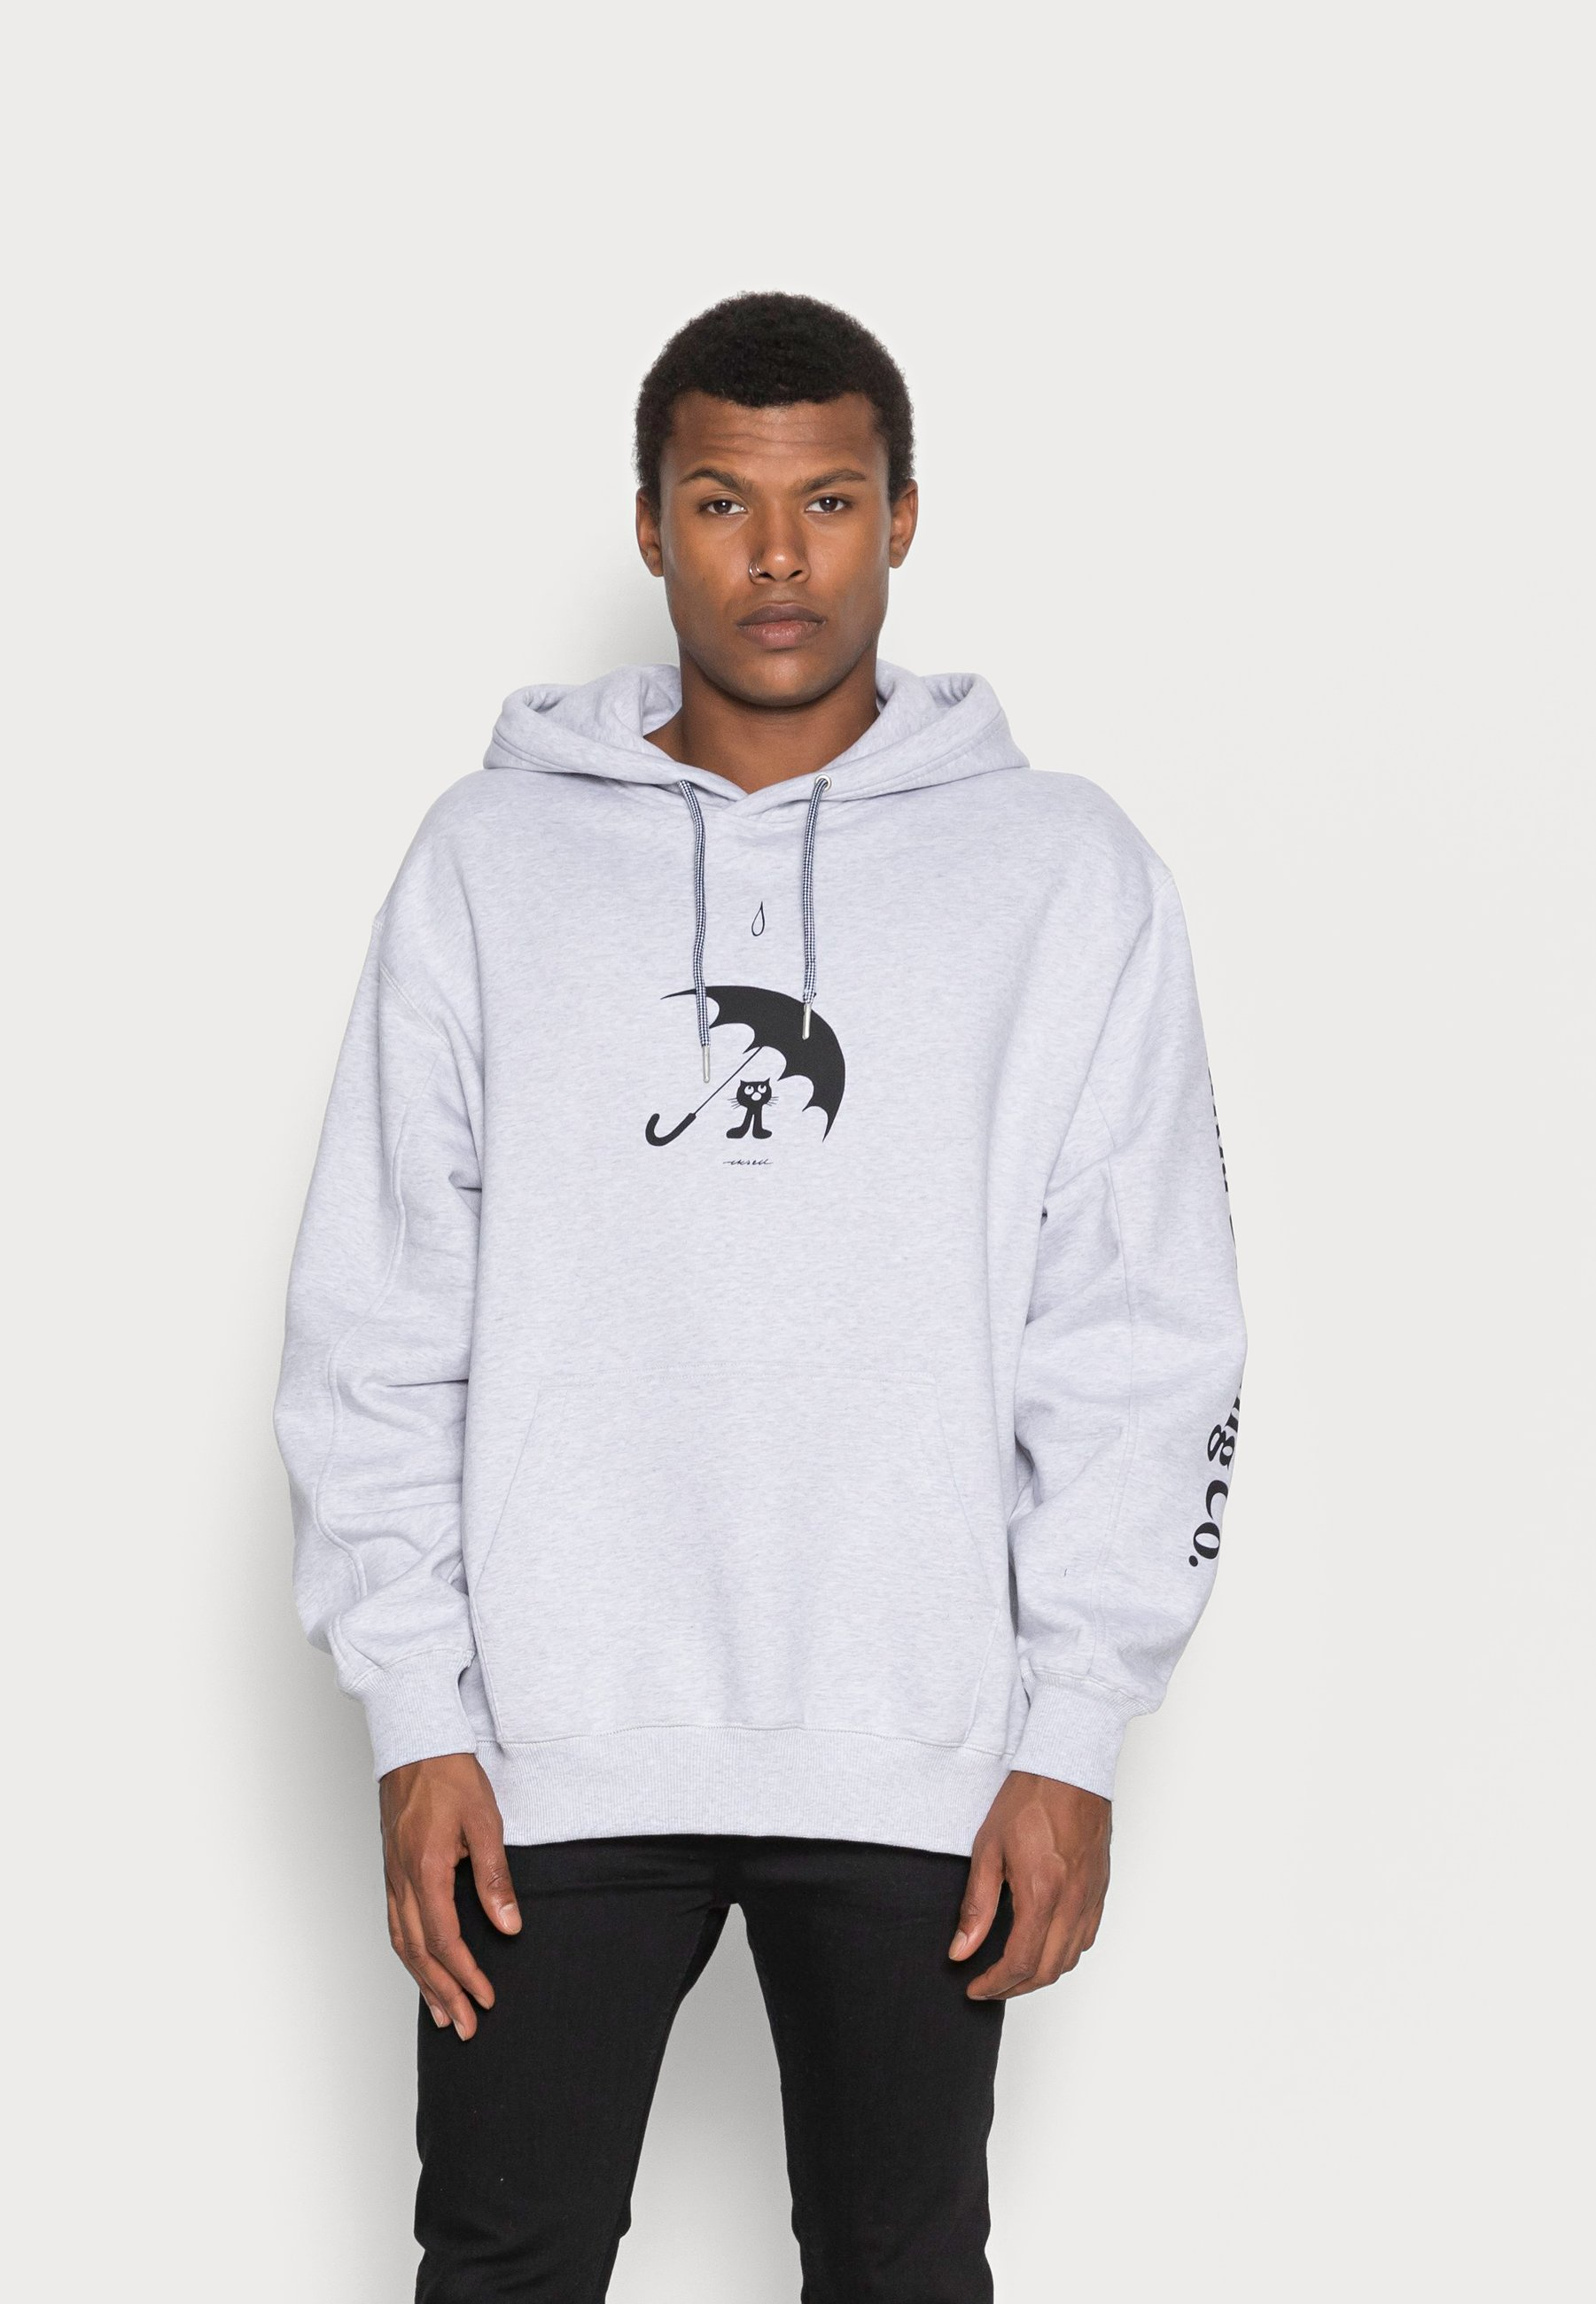 Hombre Makia x Olle Eksell Paraply Hooded Sweatshirt - Jersey con capucha